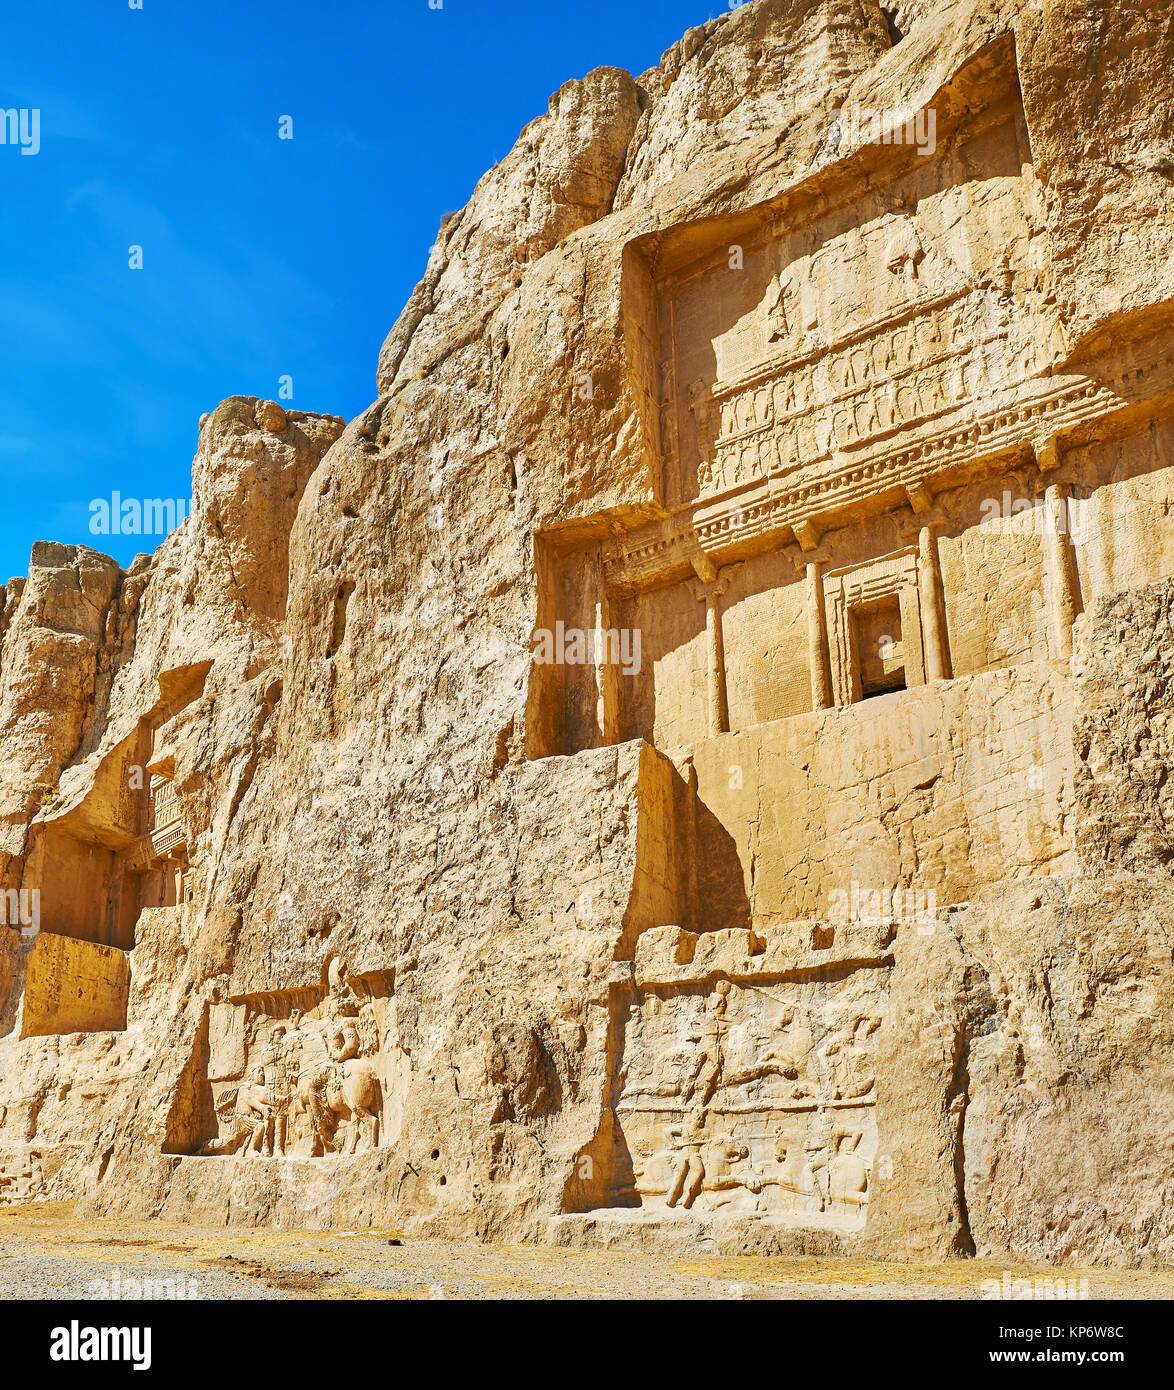 Naqsh-e Rustam Necropolis is popular archaeological zone in Fars Province of Iran, located next to Persepolis. Stock Photo